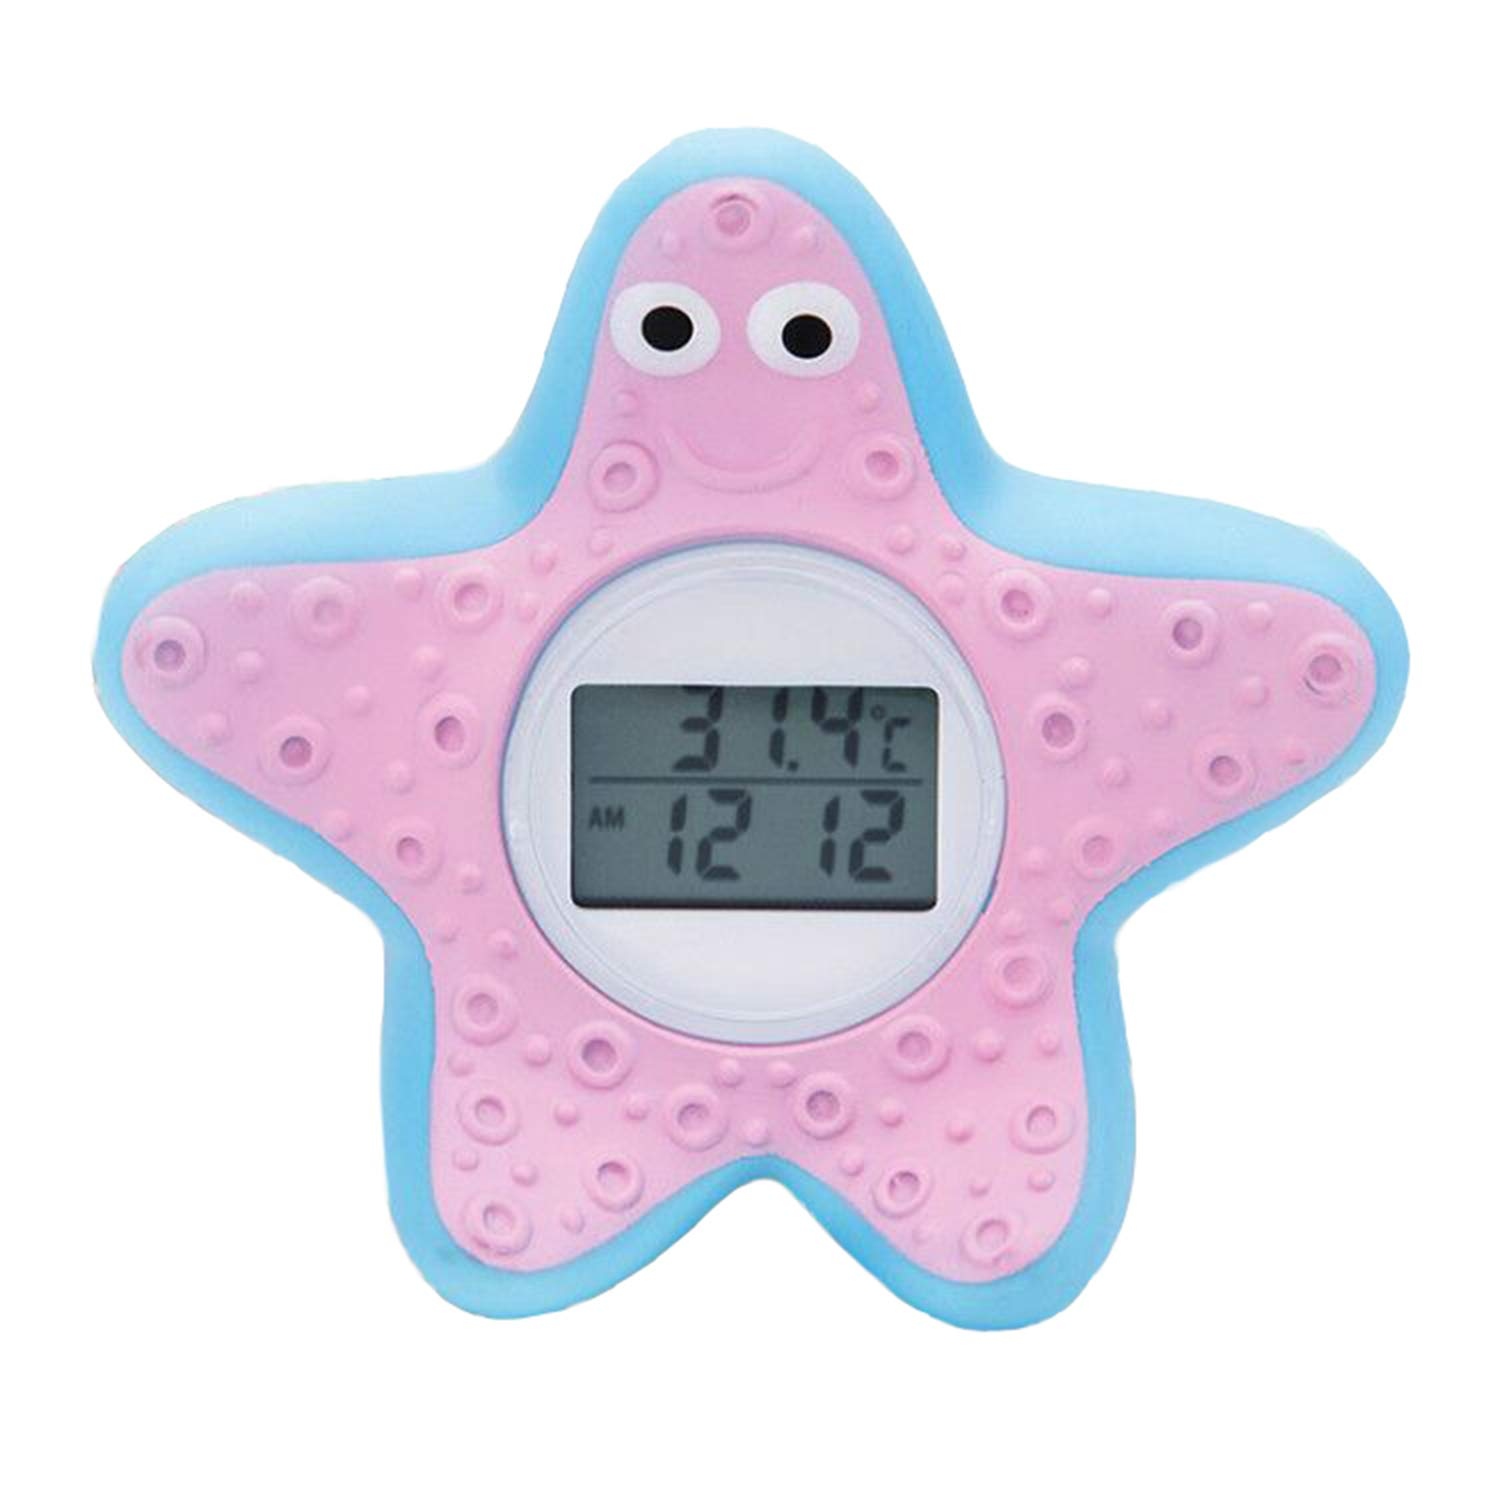 DongRong Baby Bath and Room Thermometer The Infant Baby Bath Floating Toy Safety Temperature Thermometer. Starfish